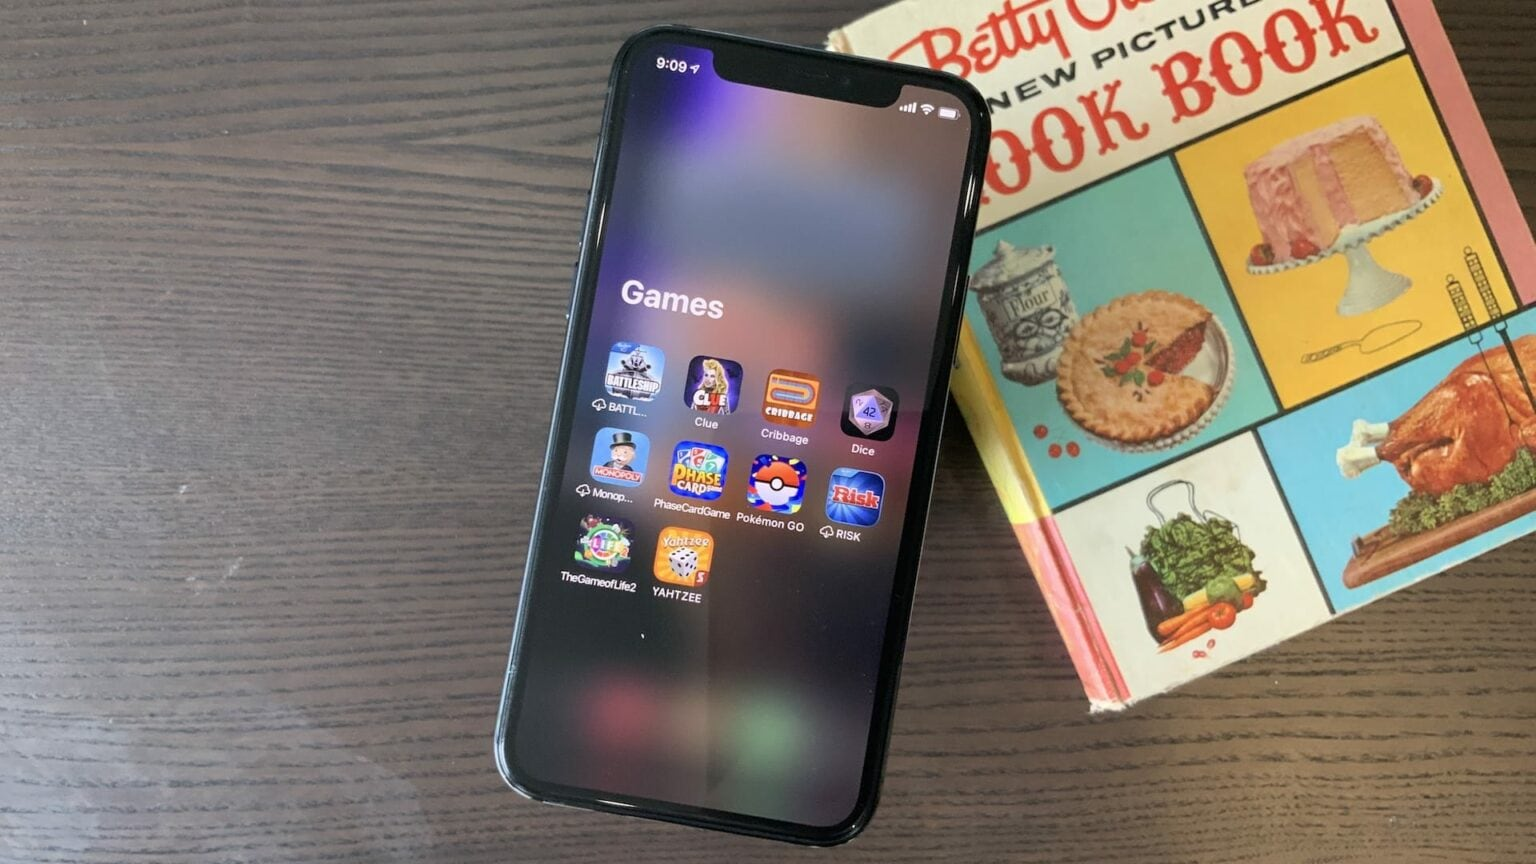 iOS Games on iPhone 11 Pro